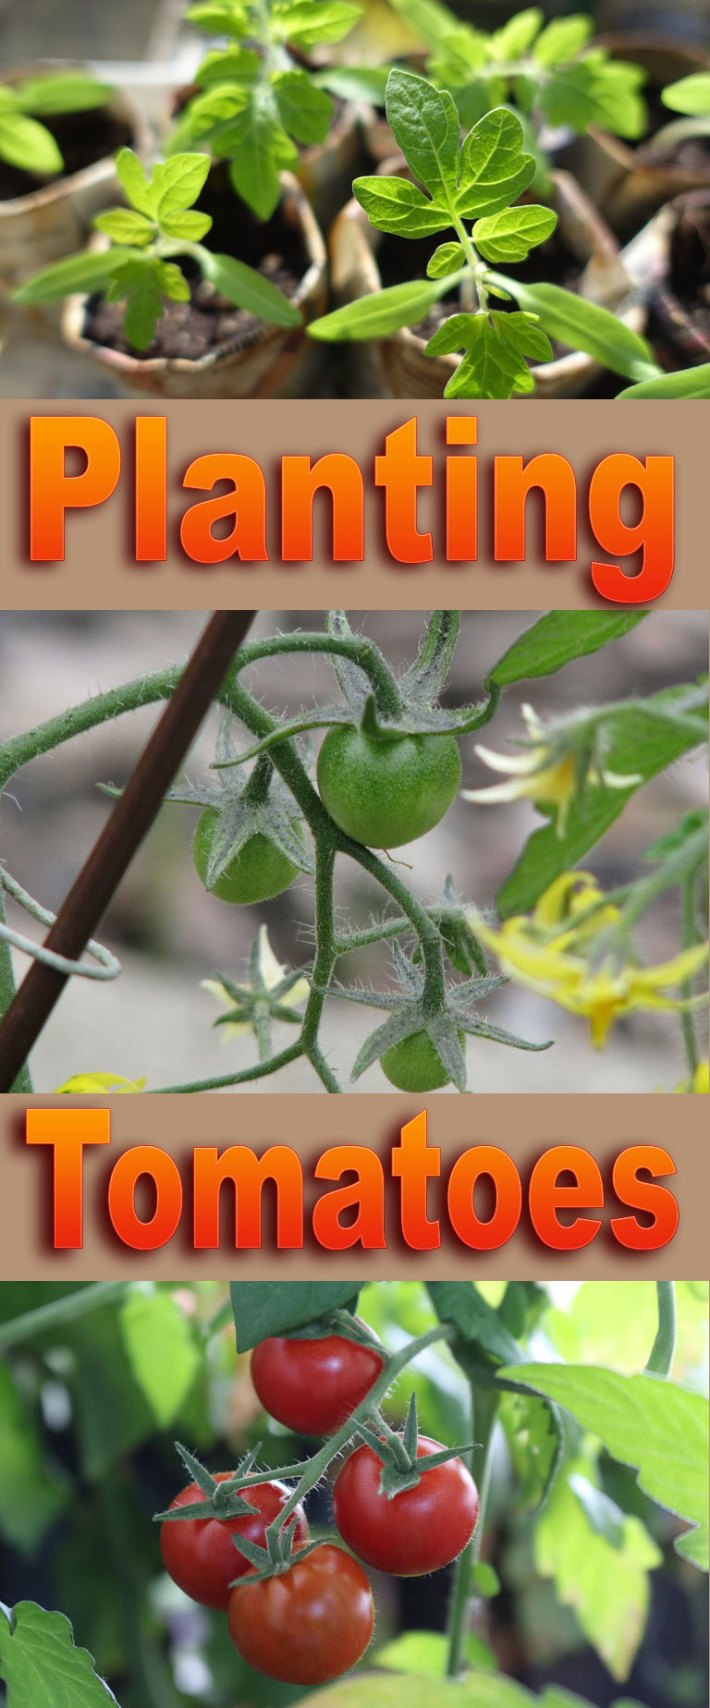 How to: Planting Tomatoes